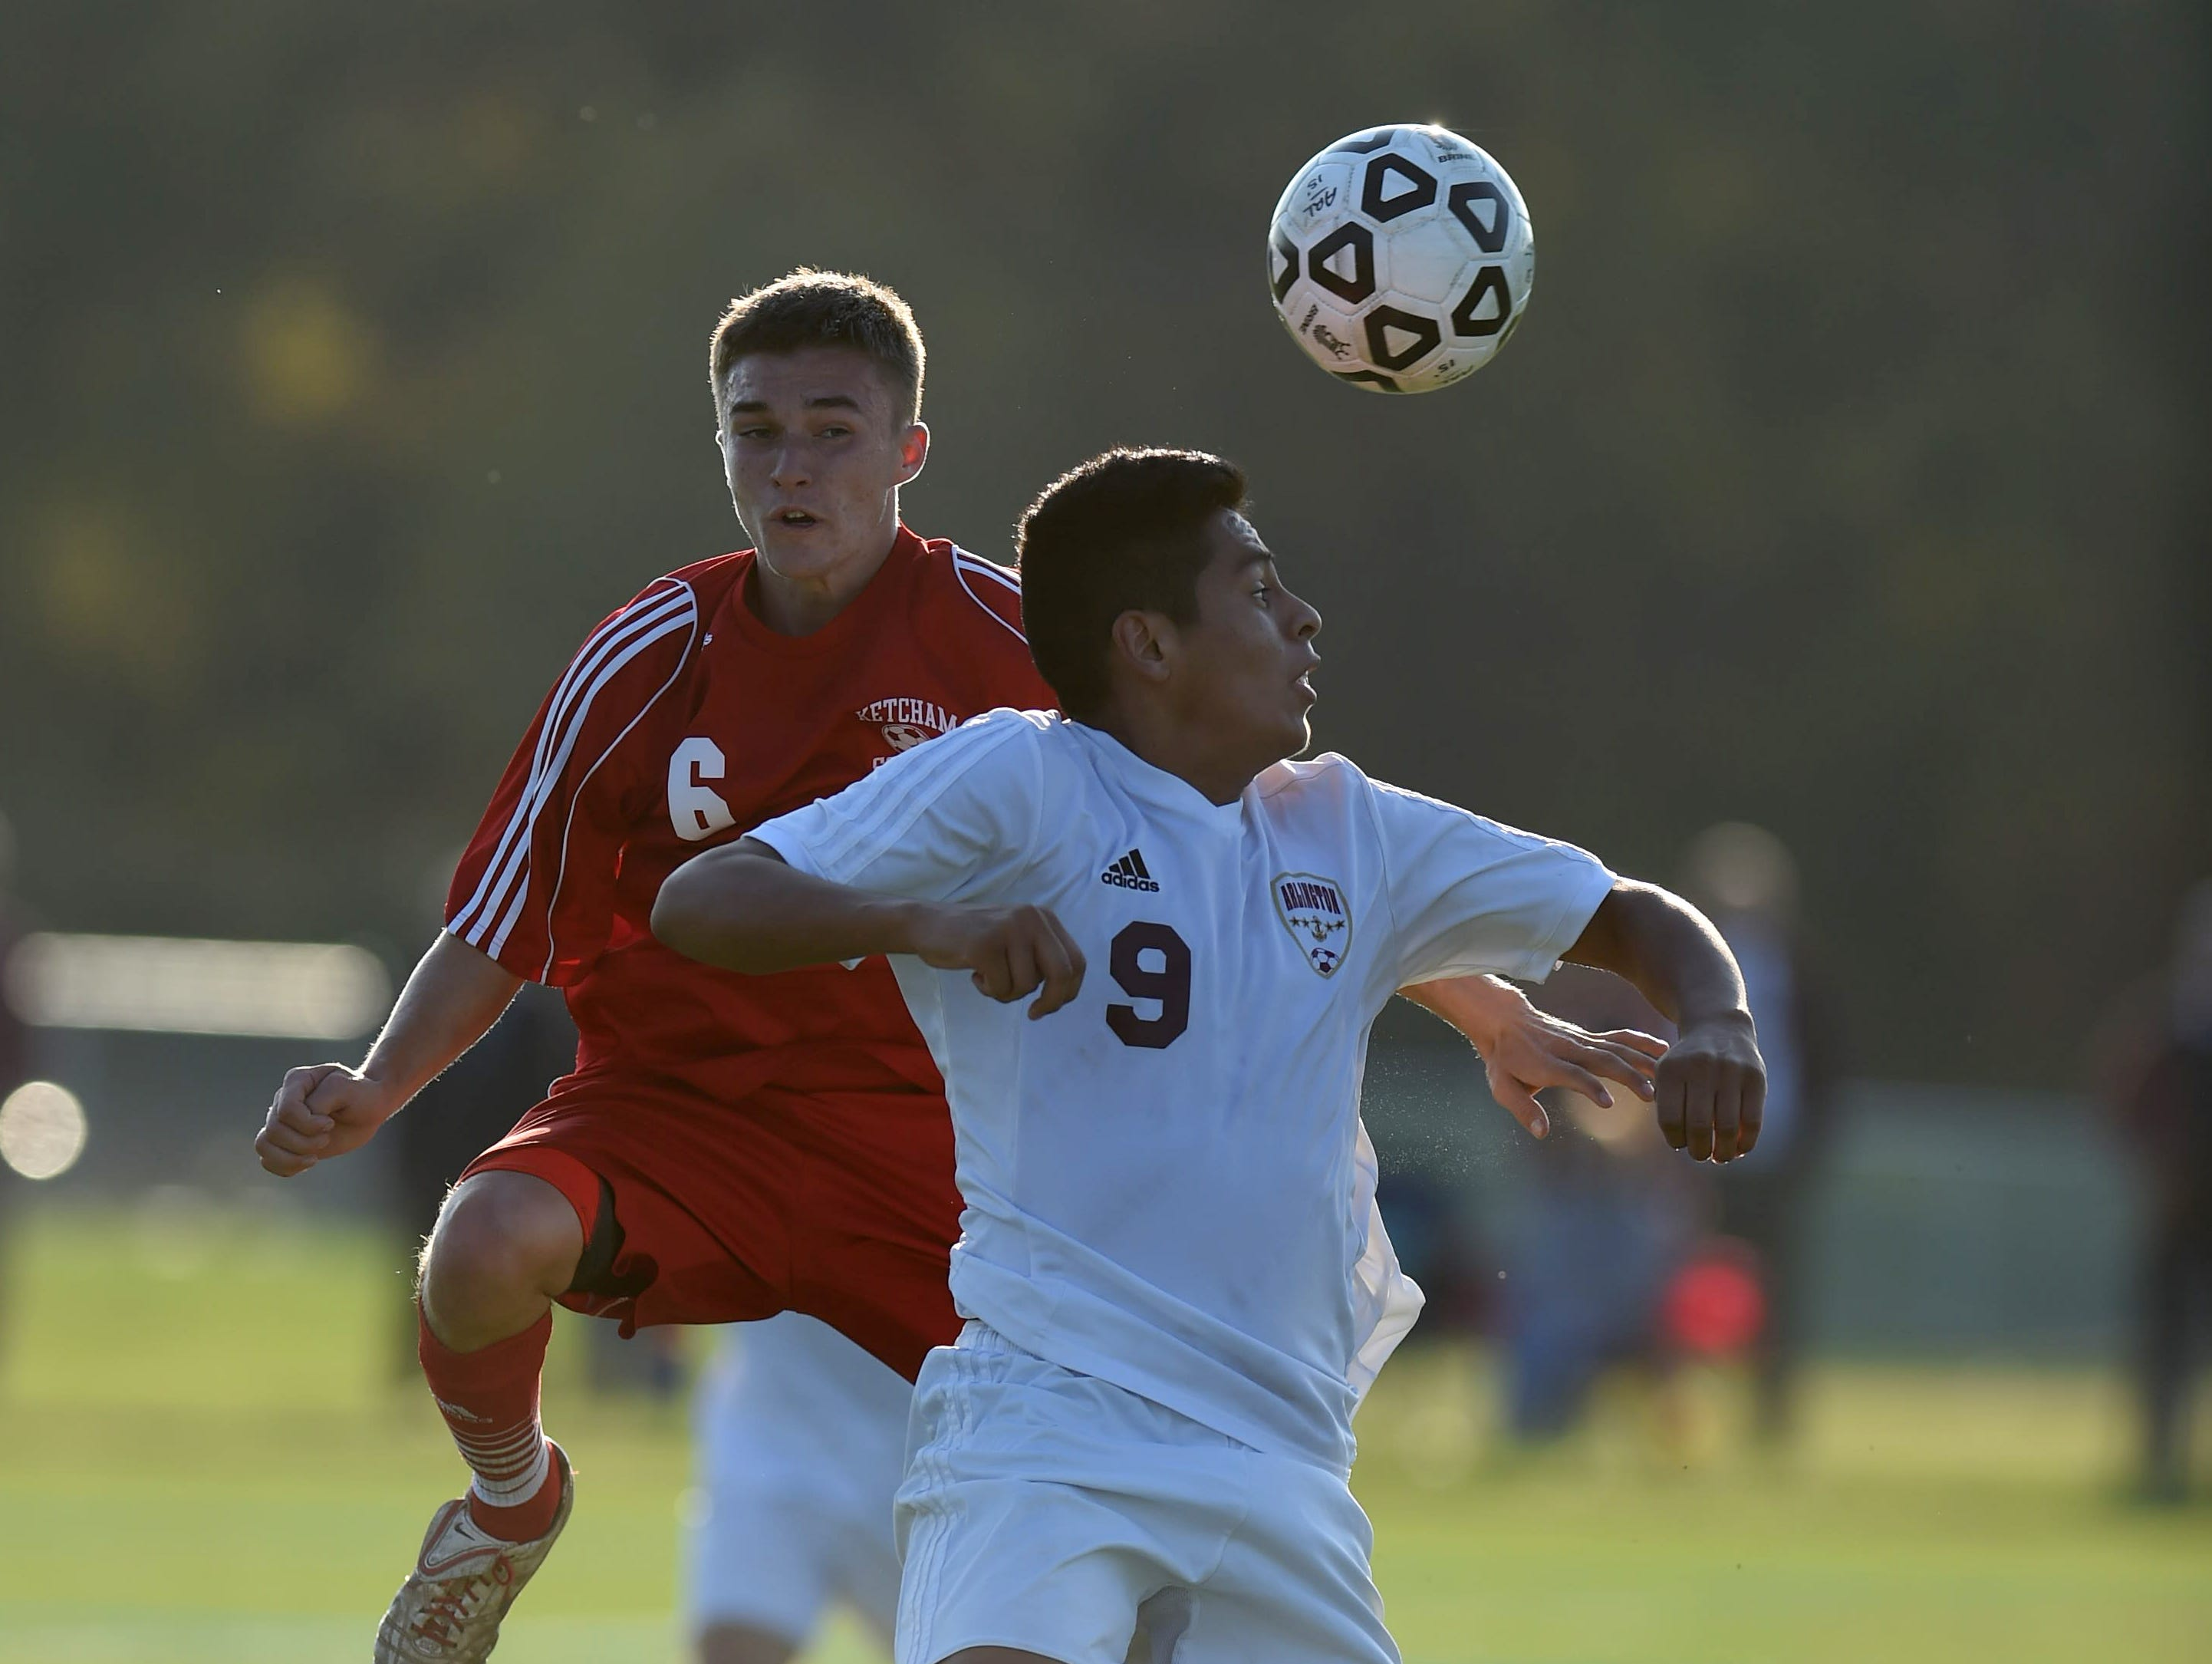 Arlington's George Pogo goes up for a header against Ketcham's Matt Lynch during Tuesday's game in LaGrangeville.